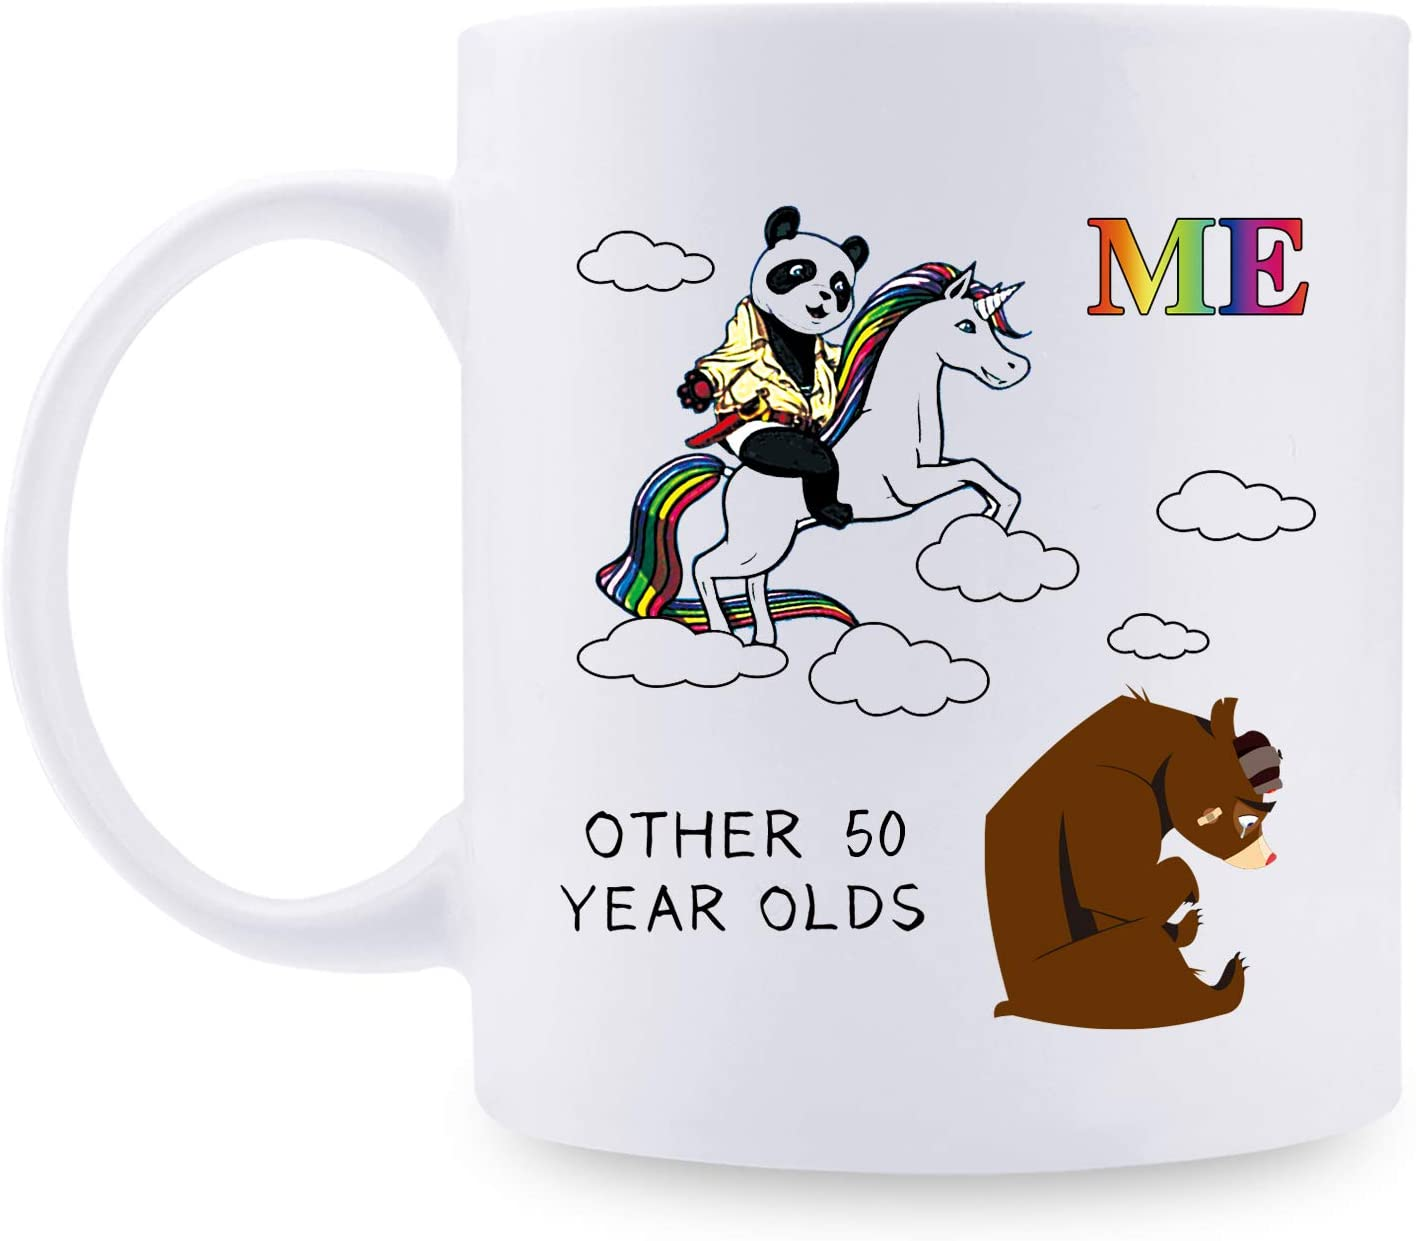 50th Birthday Gifts for Men - Panda Riding Unicorn Pandicorn Mug - 50 Year Old Men Gift Ideas for Dad, Husband, Son, Brother, Friend, Classmate, Colleague - 11 oz Funny Ceramic Coffee Tea Cocoa Mug